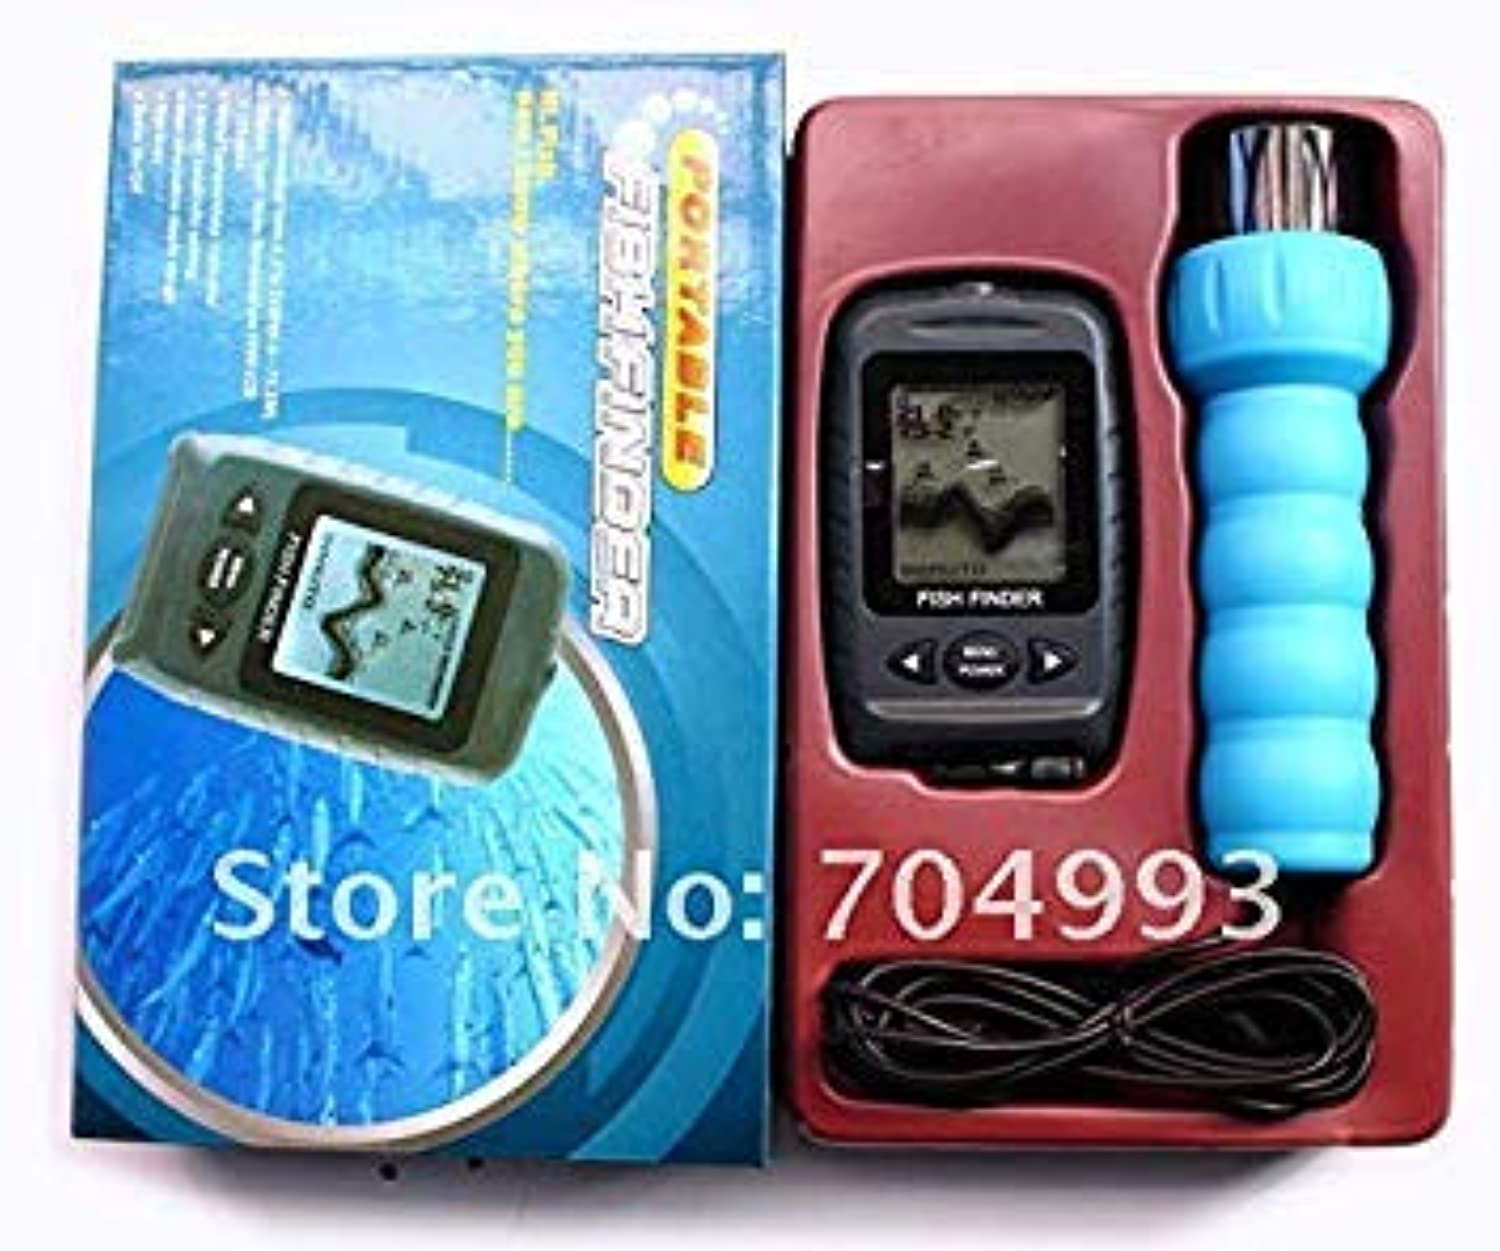 GEOPONICS New Cheap Free Scan Transducer Portable Handheld Fish Finder Used OnFish Finder